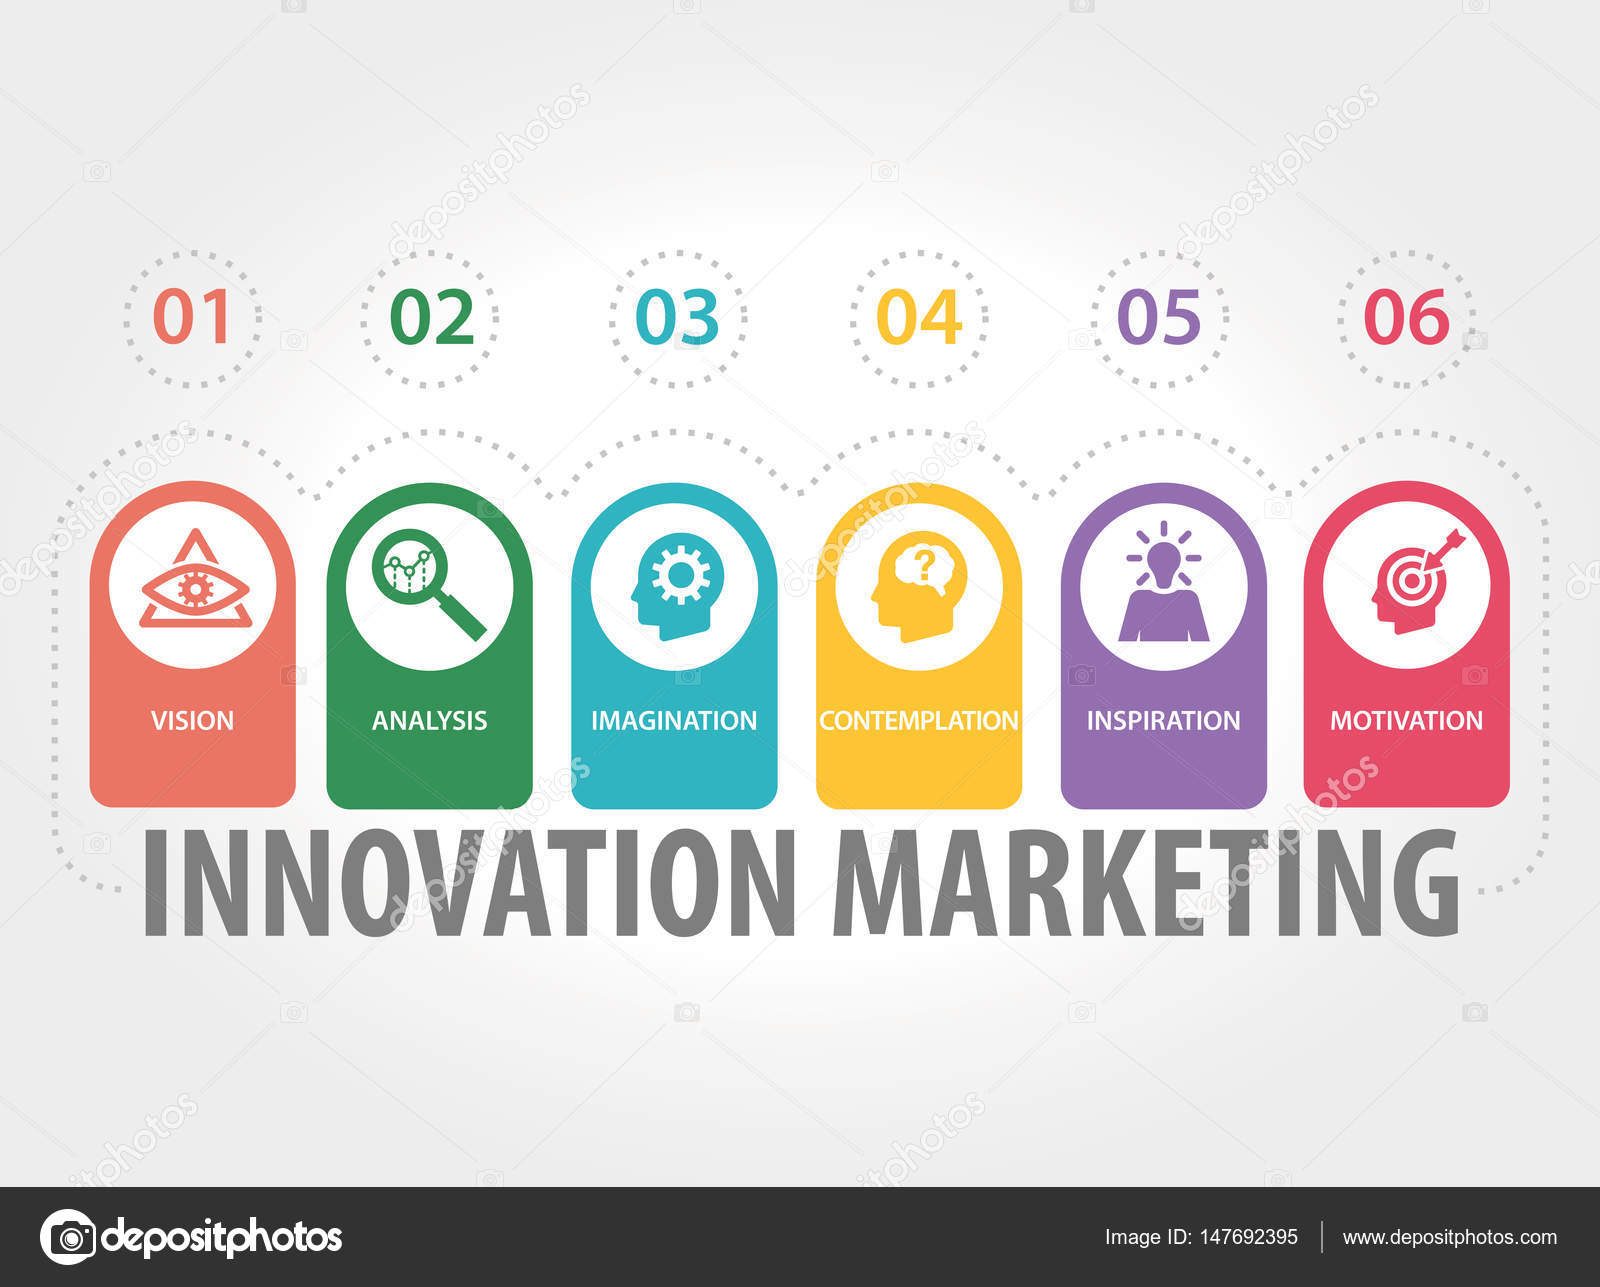 depositphotos_147692395-stock-illustration-innovation-marketing-concept.jpg